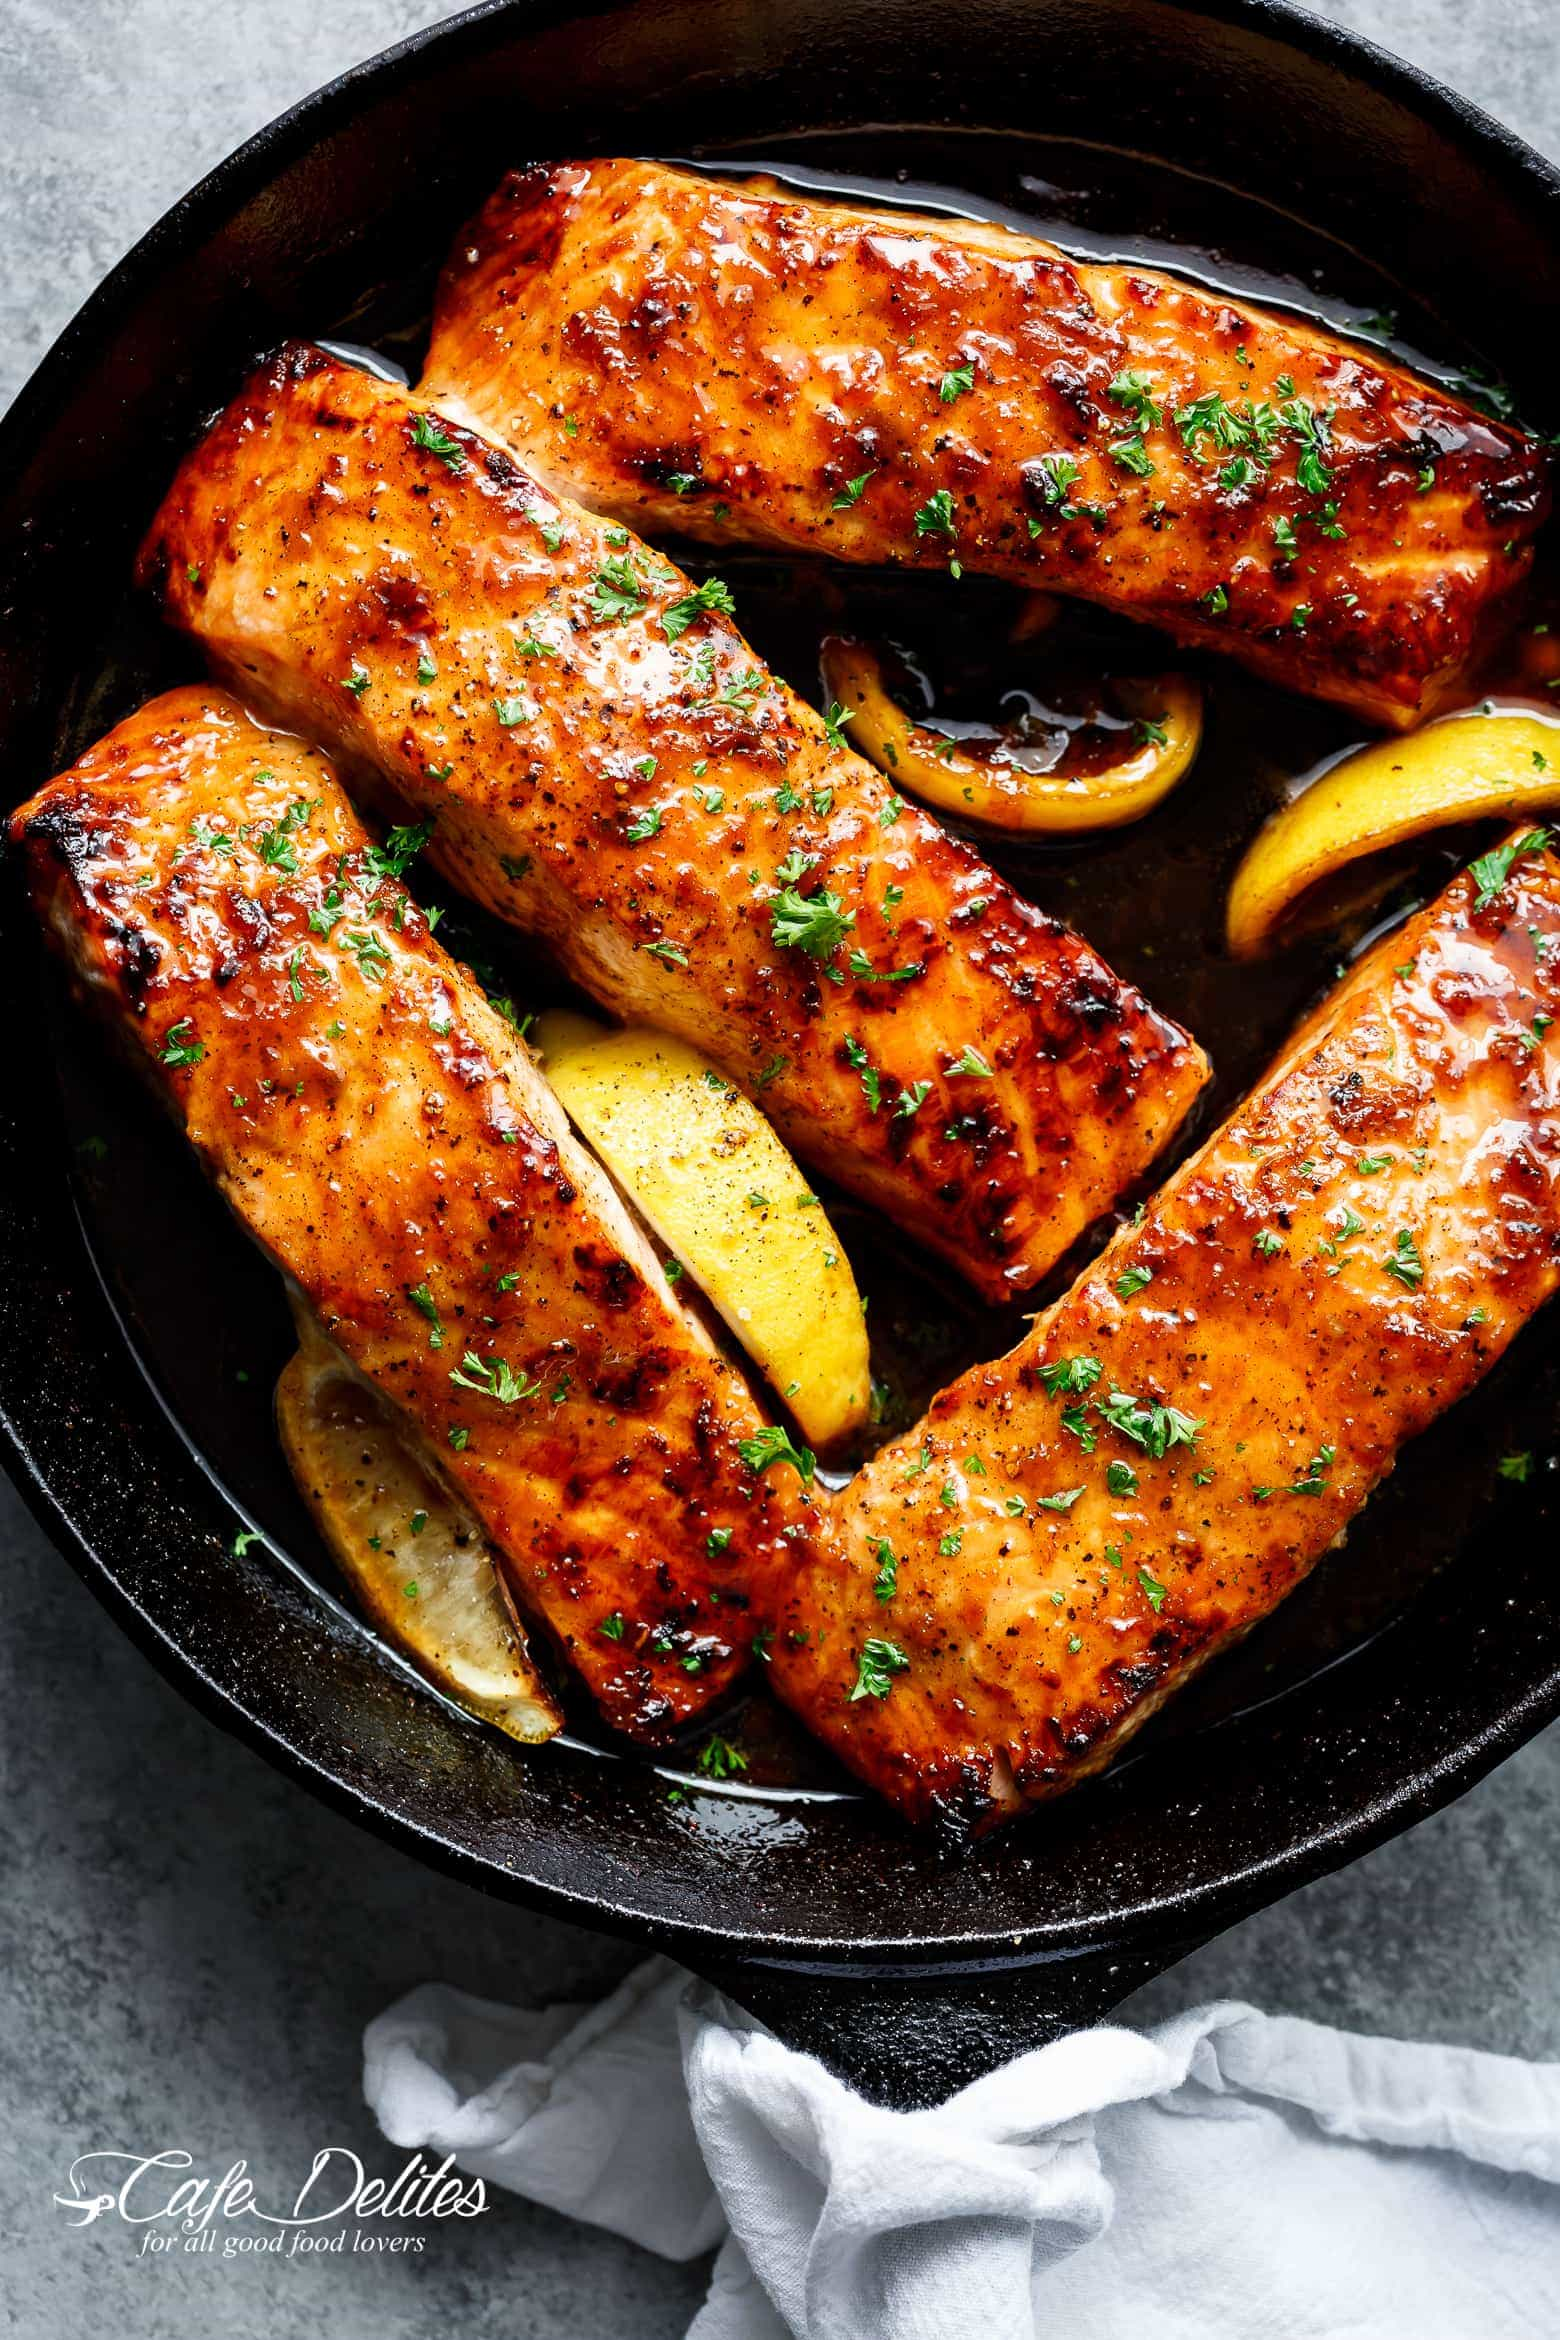 How to cook tasty salmon 91